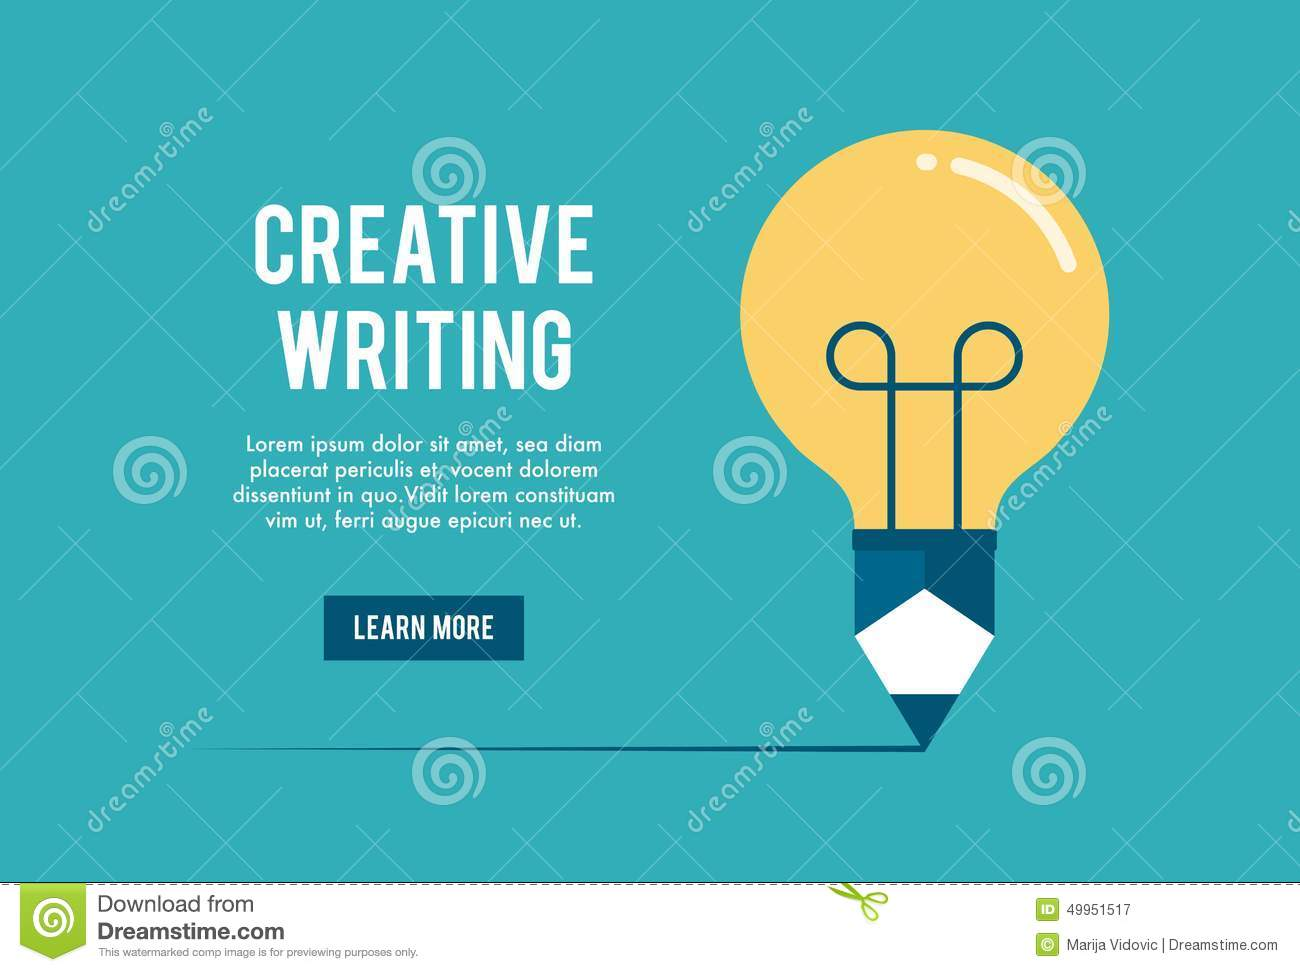 creative writing for dummies dgereport web fc com creative writing for dummies